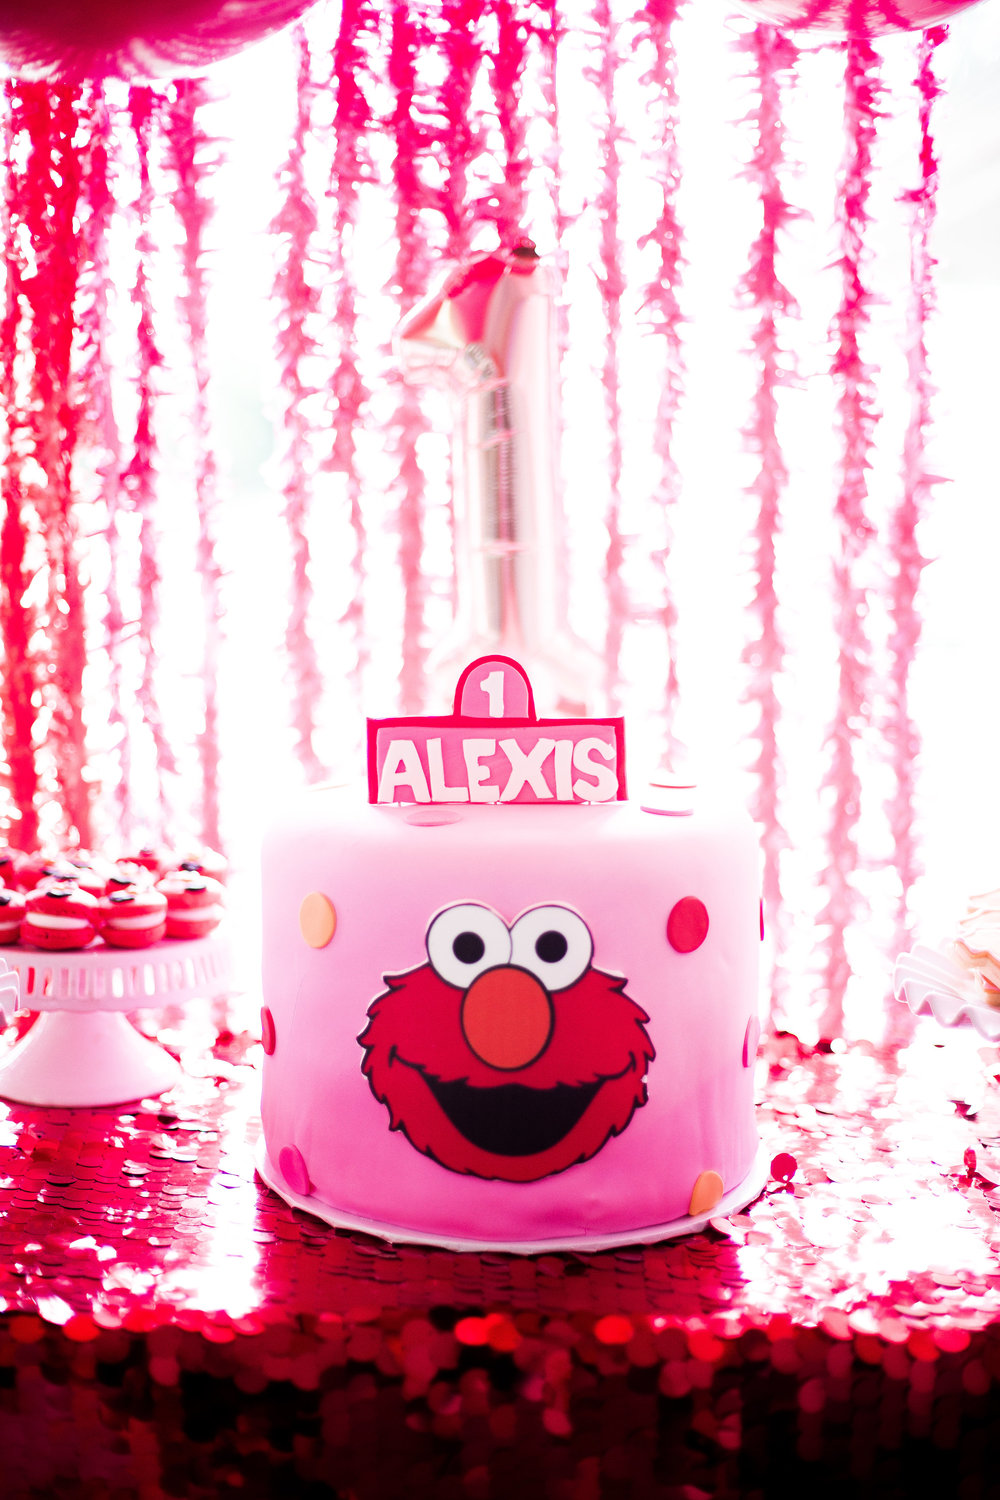 Alexis'_1st_Birthday_04.07.18_-2.jpg